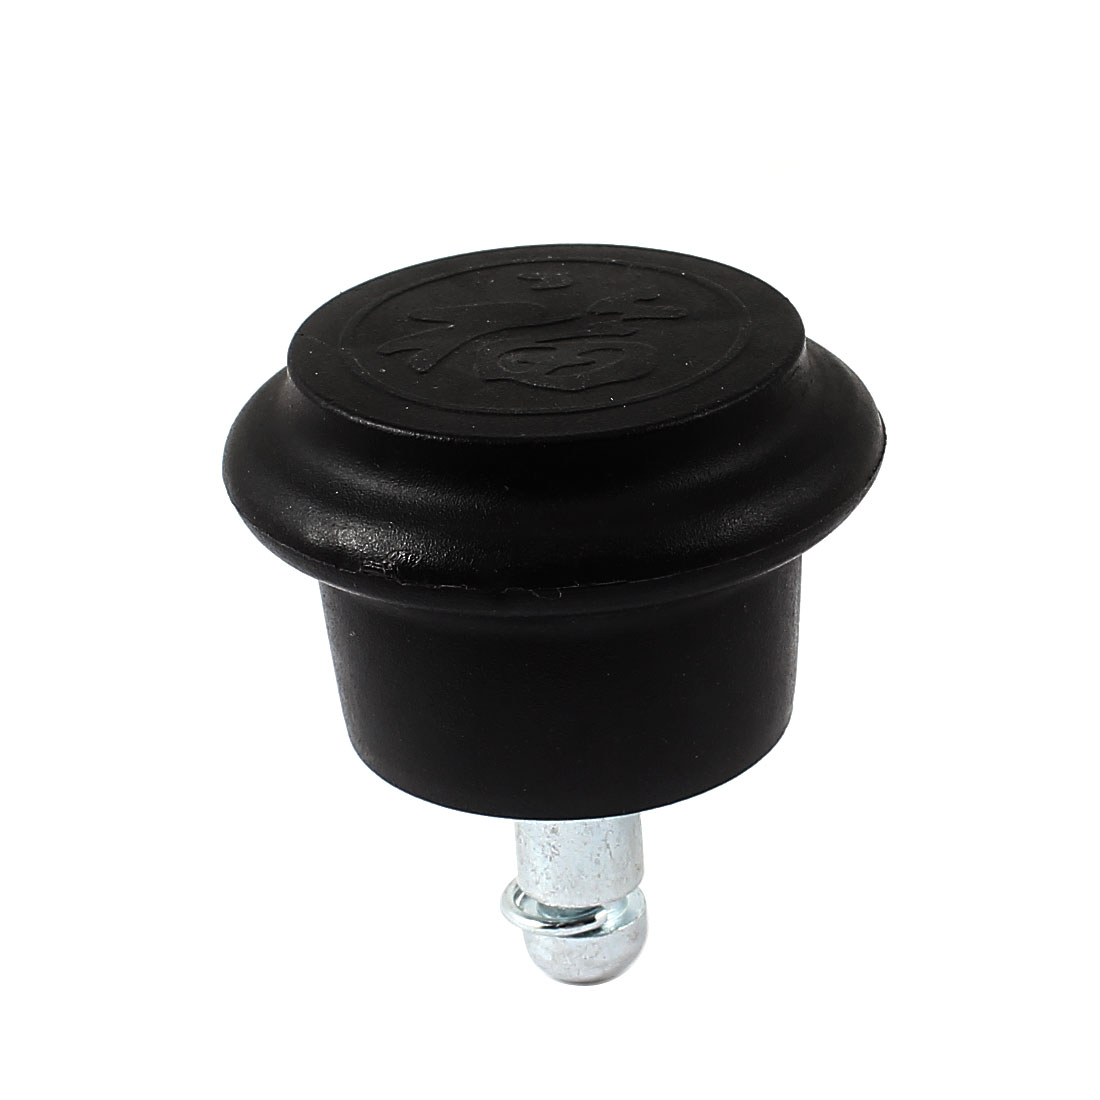 11mm x 22mm Lock Stem 52mm Diameter Black Plastic Base Furniture Glide Leveling Feet Mounting